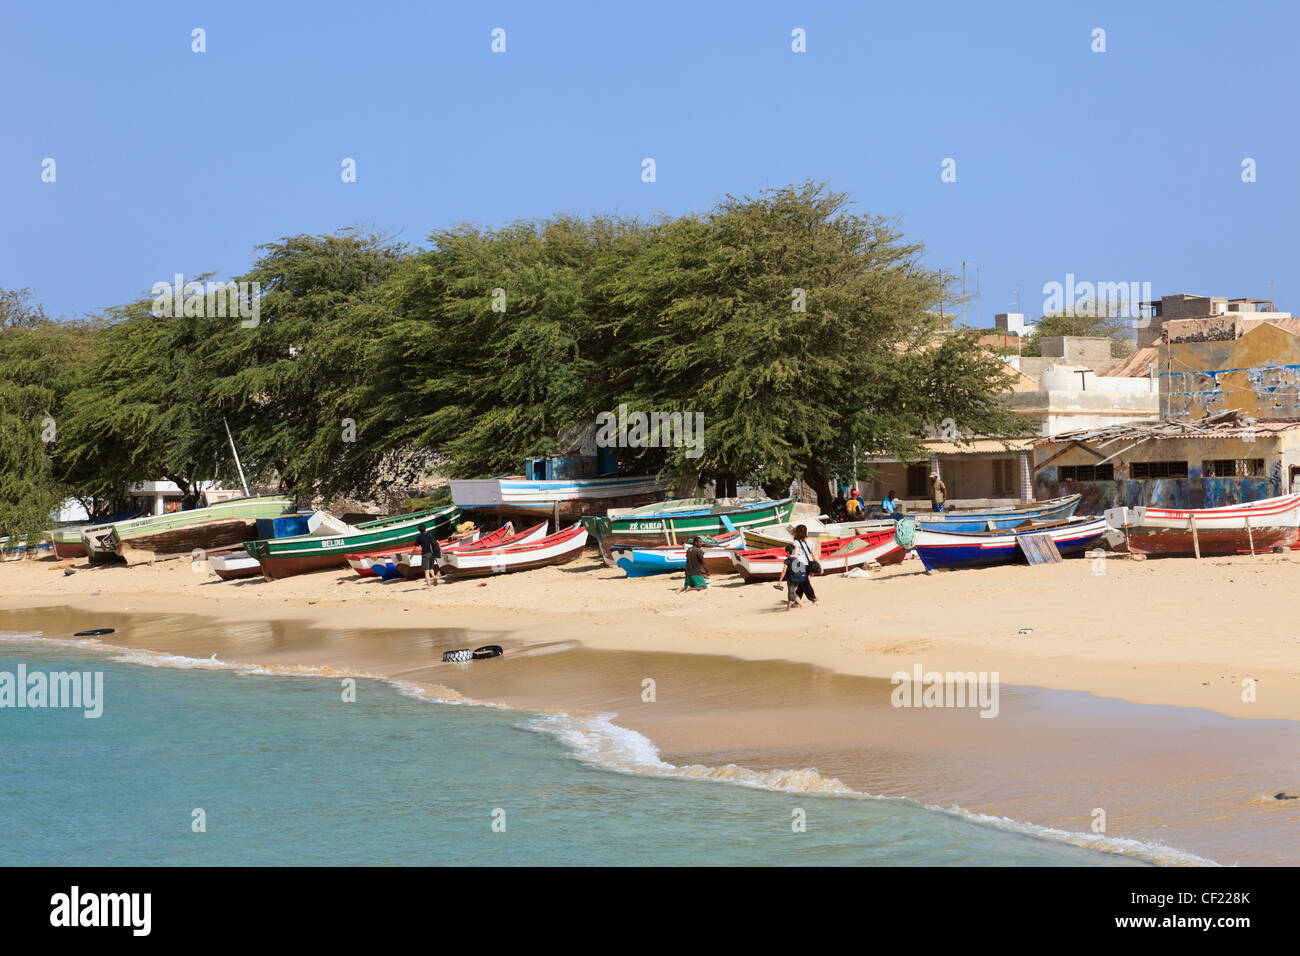 Sal Rei, Boa Vista, Cape Verde Islands. Small fishing boats on Praia de Diante beach by the old port - Stock Image